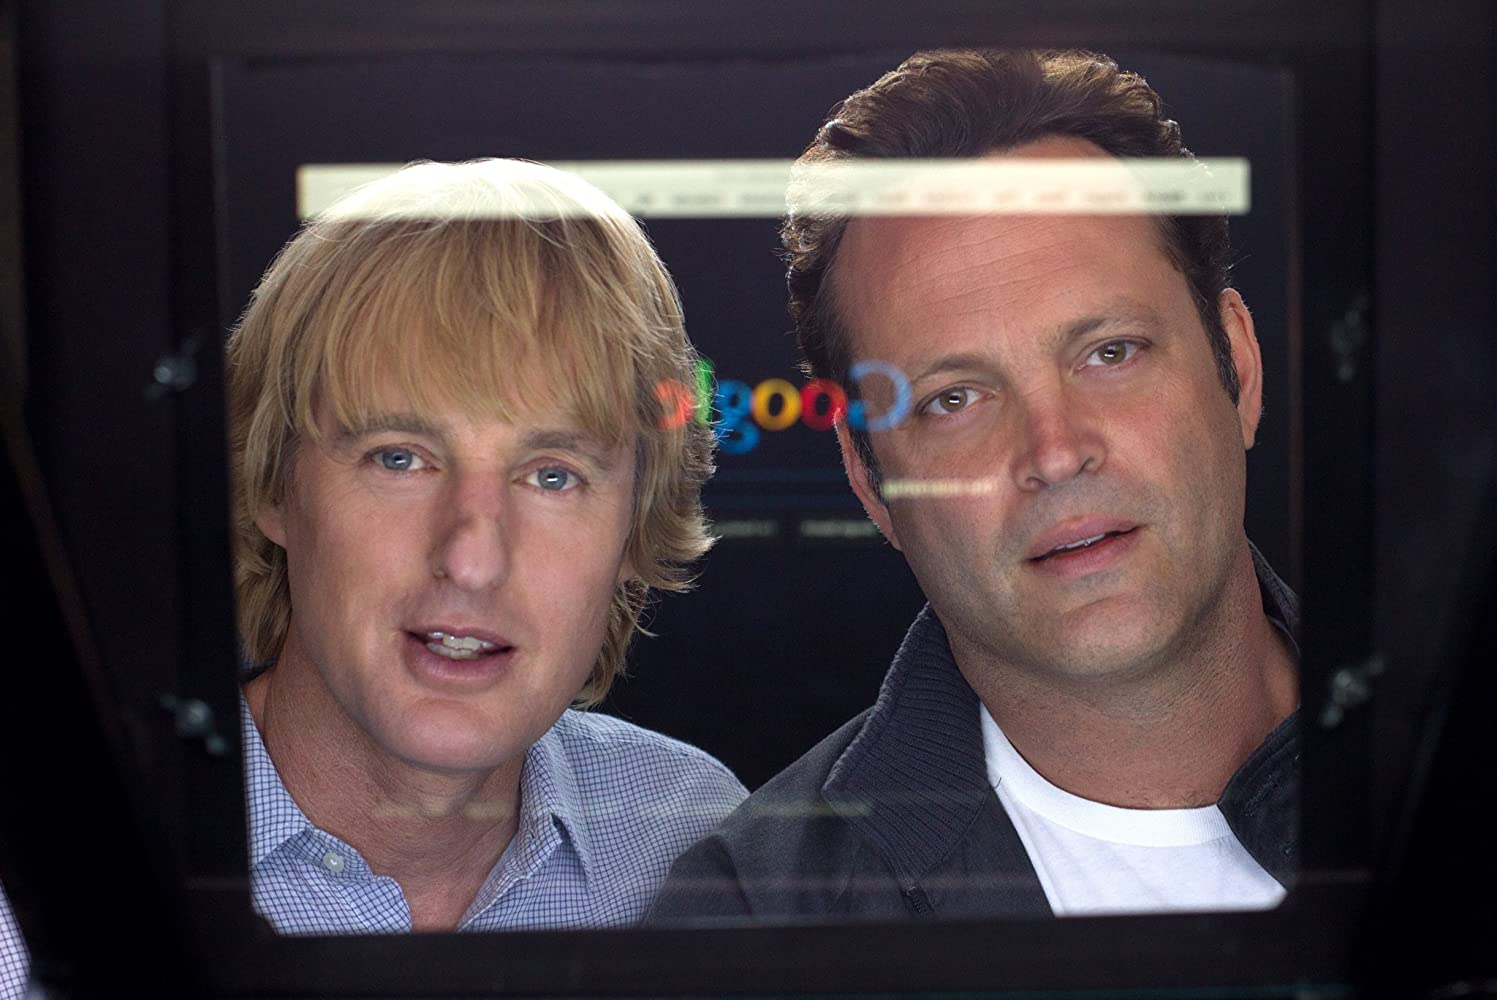 Vince Vaughn and Owen Wilson in The Internship (2013)